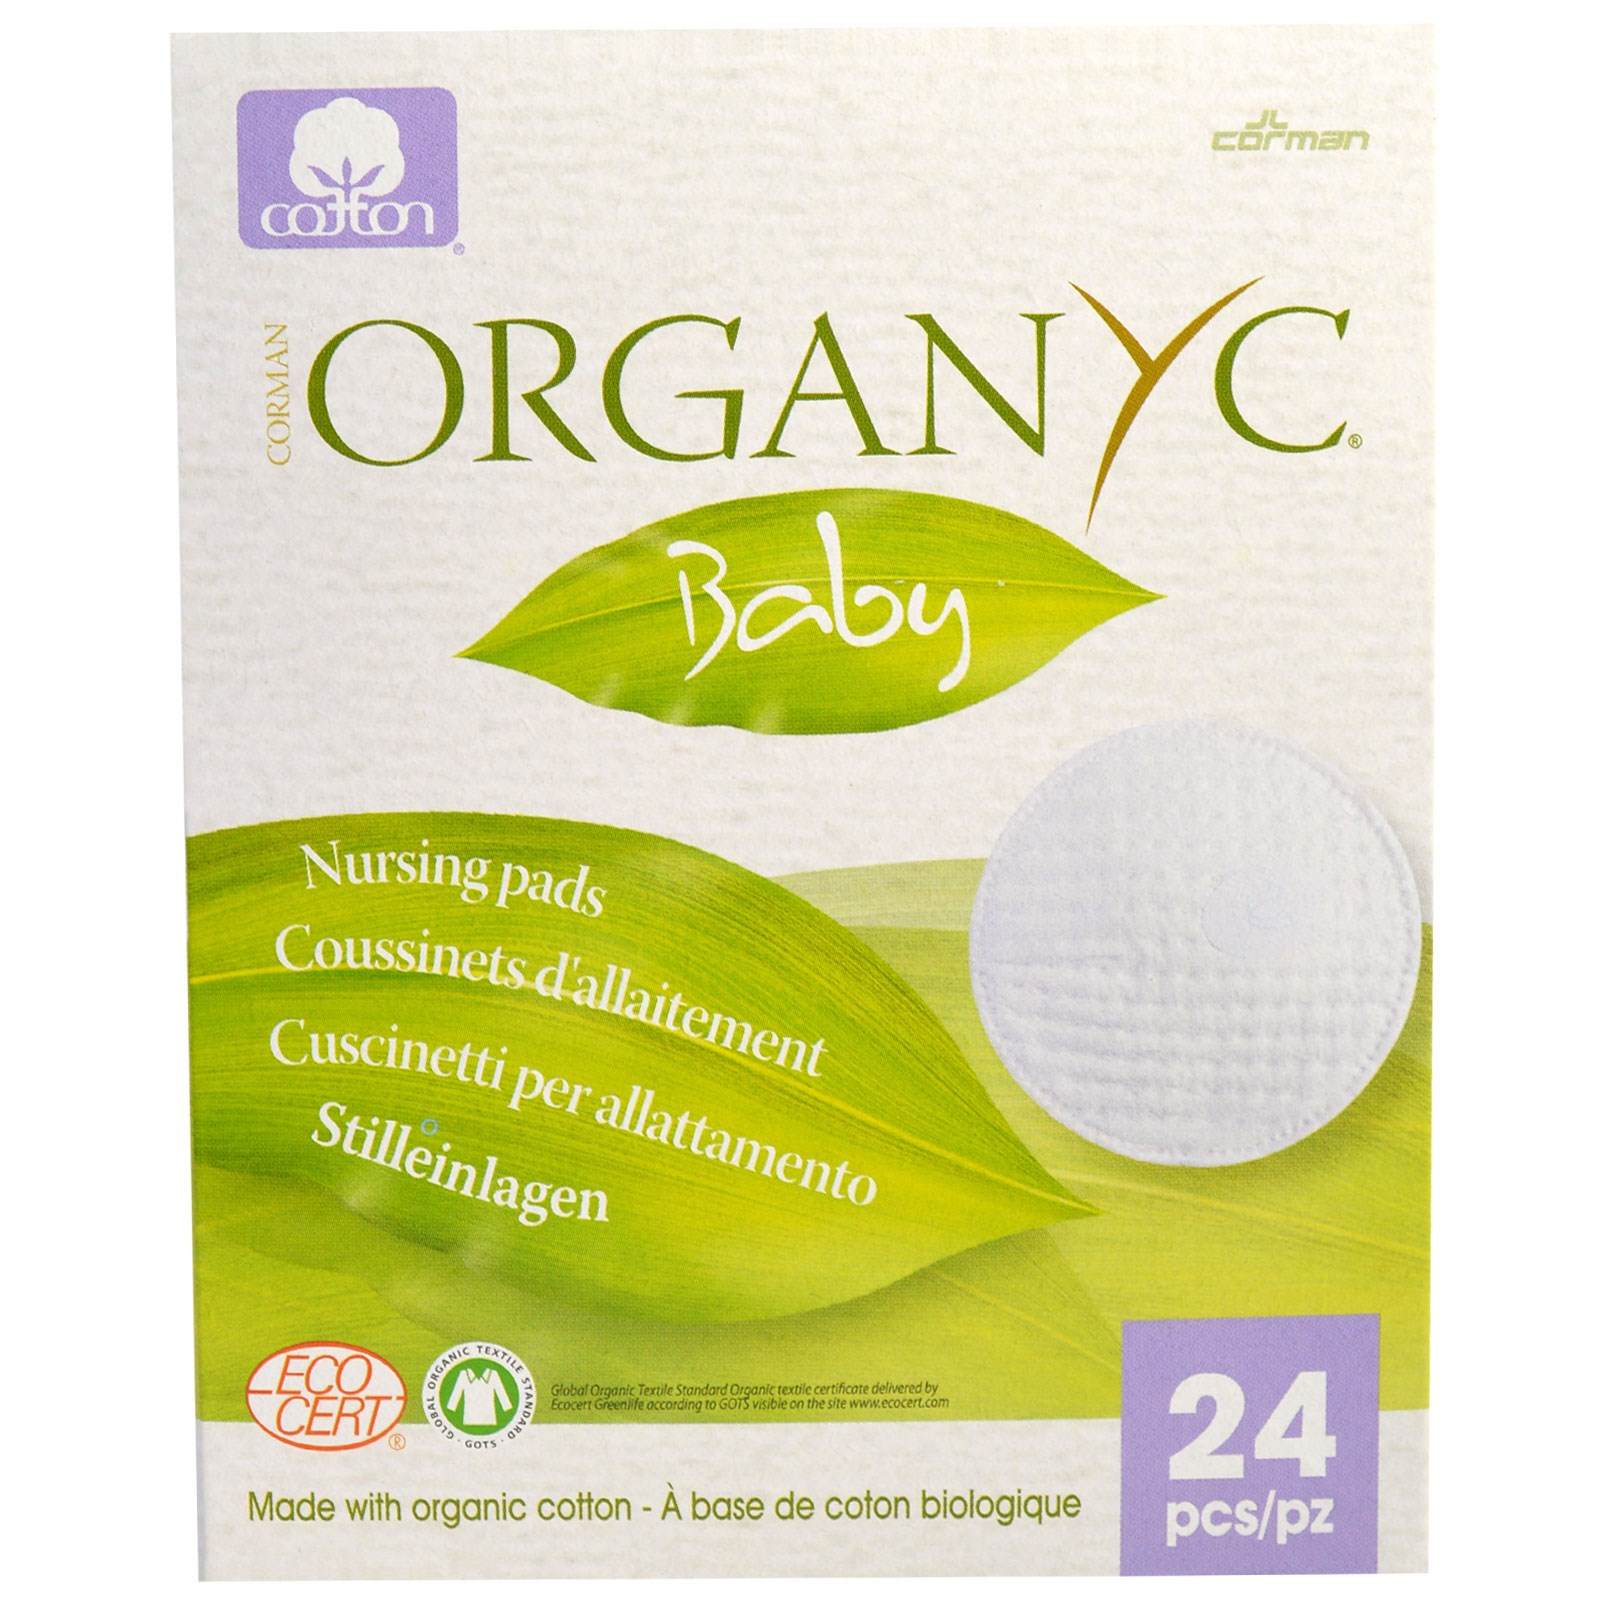 Organyc, Baby, Nursing Pads, 24 Pieces(pack of 6) by Organyc